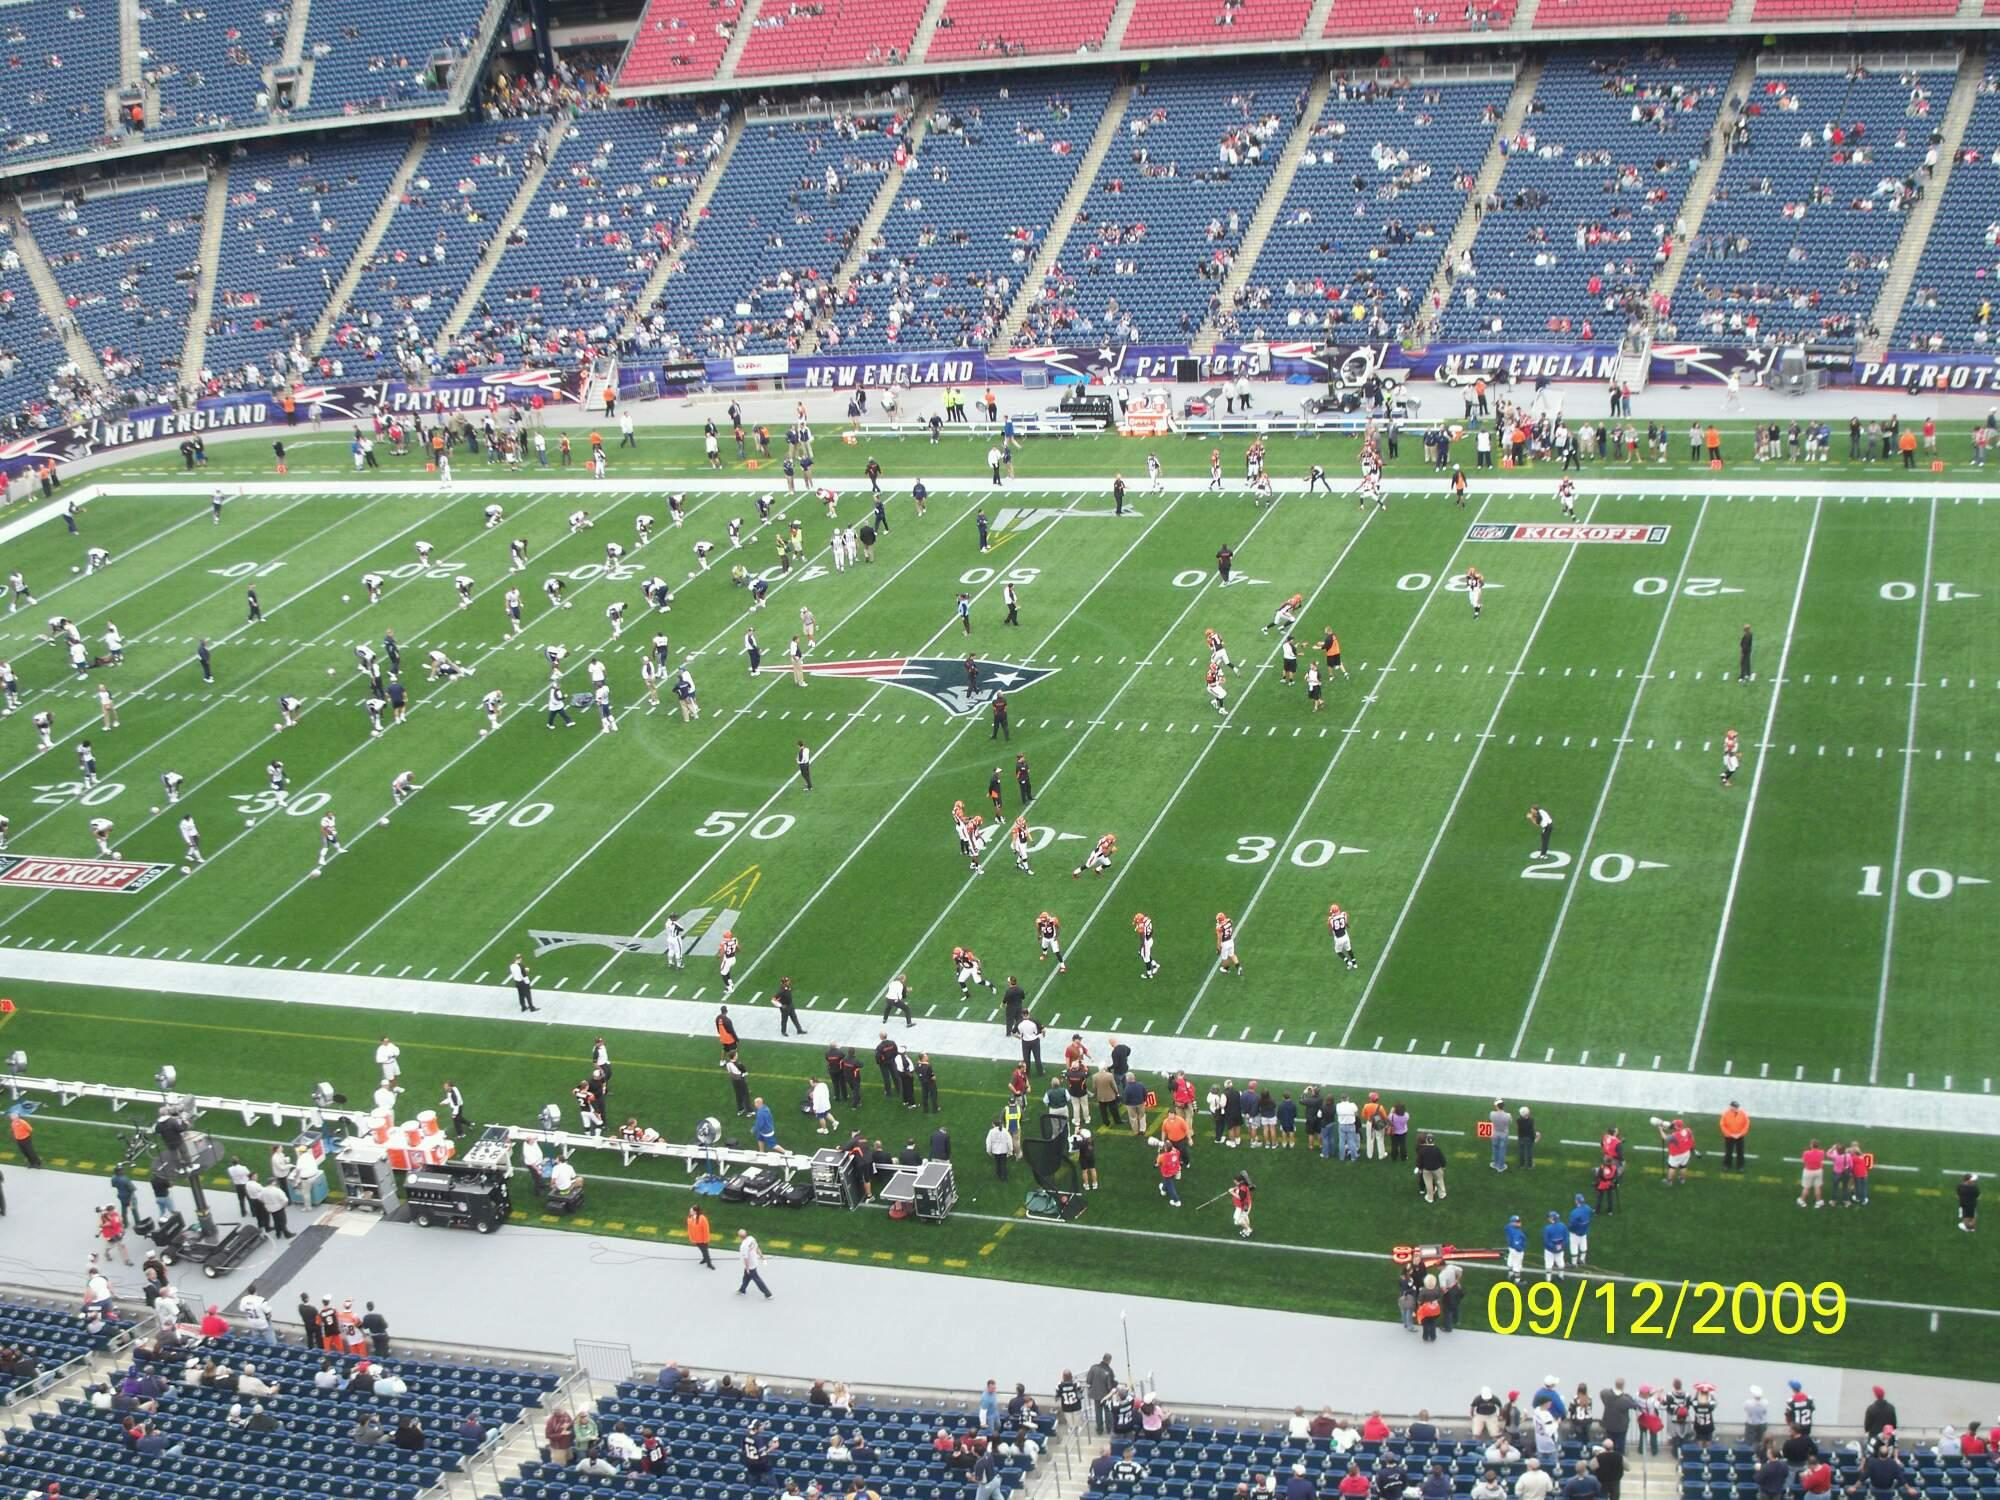 Gillette Stadium Section 326 Row 2